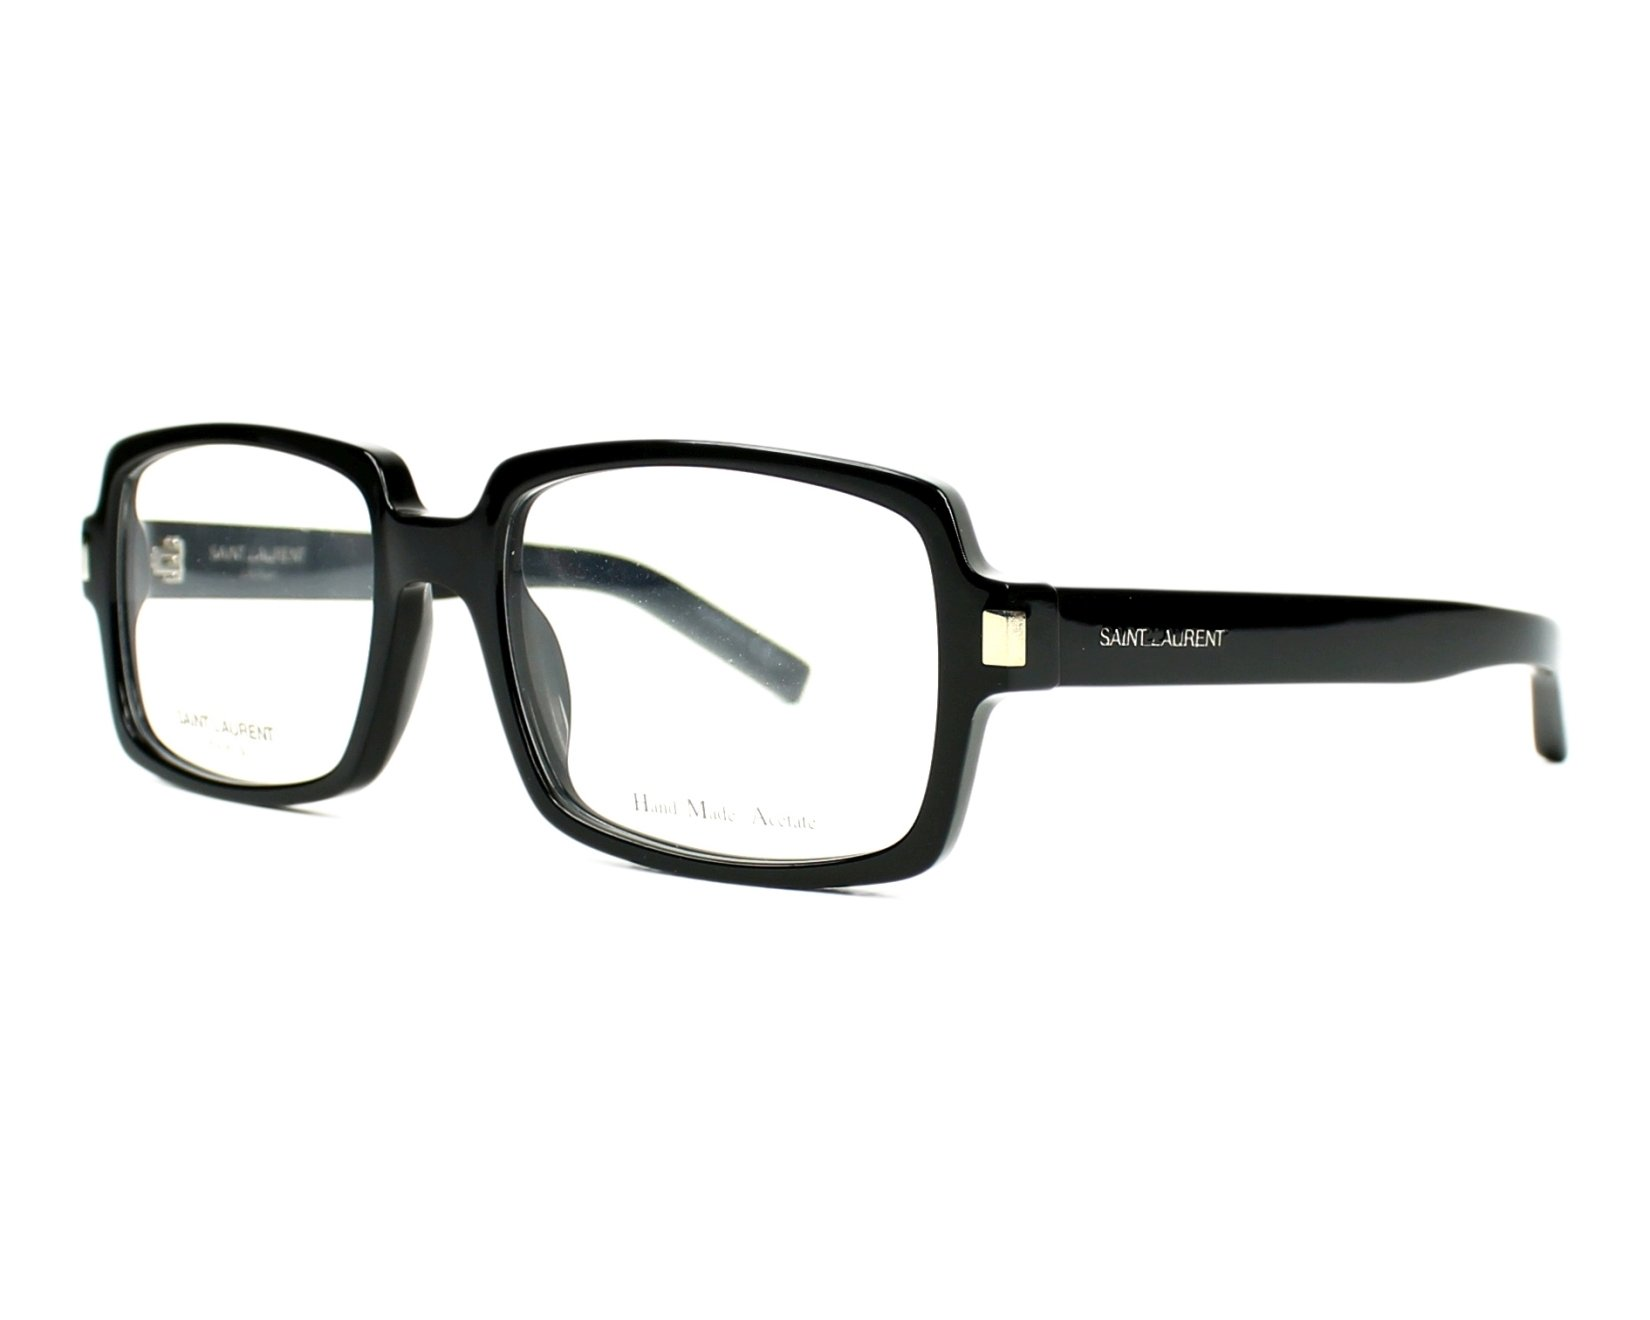 Yves saint laurent eyeglasses sl 66 807 black visio for Miroir yves saint laurent